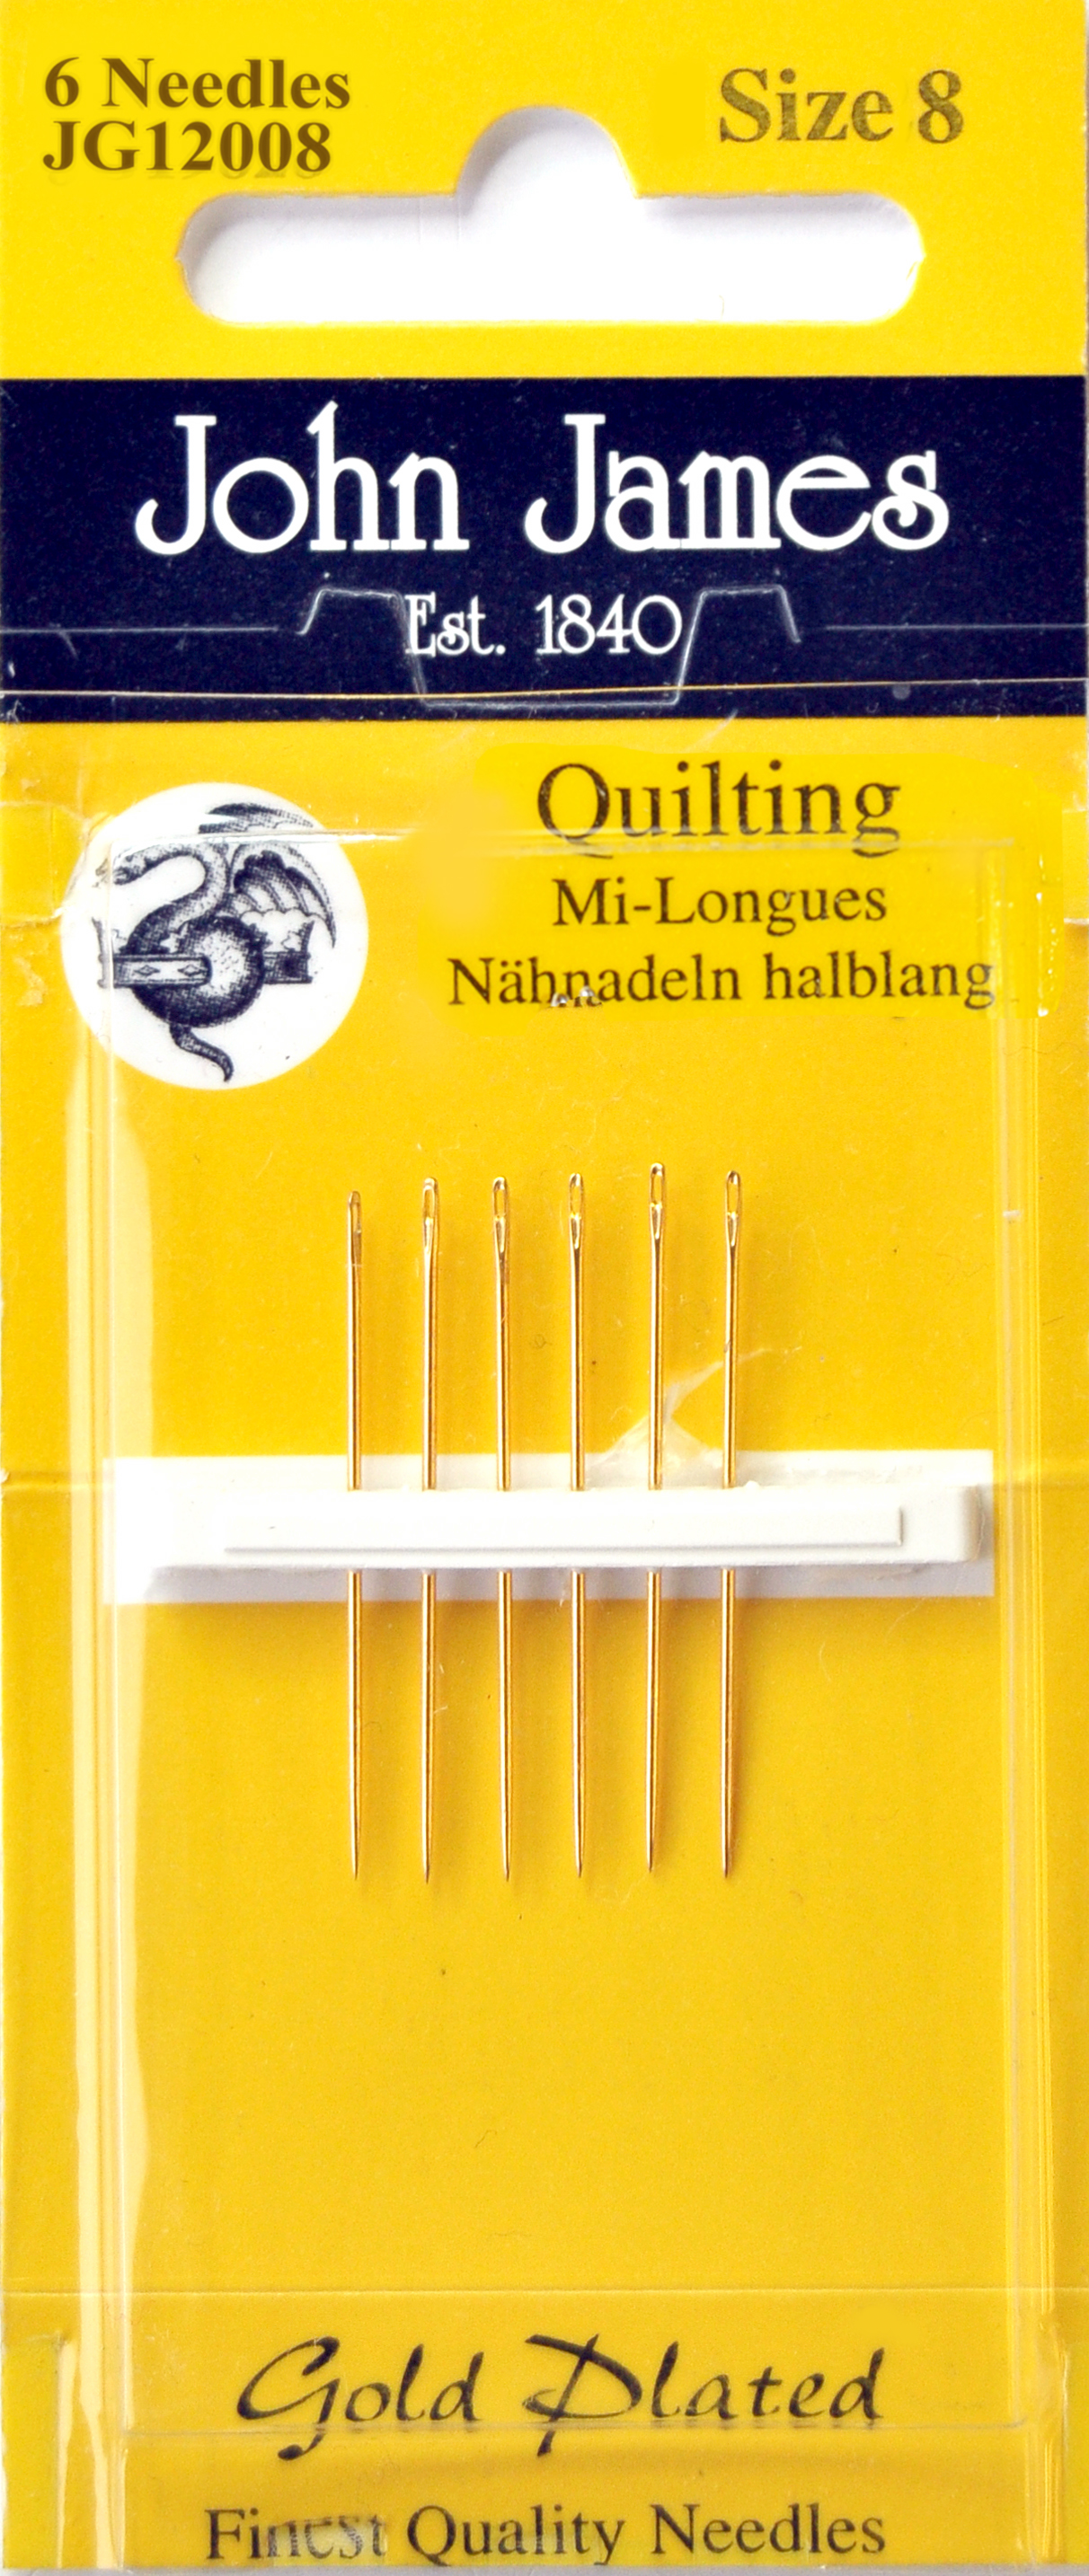 Quilting-Needles